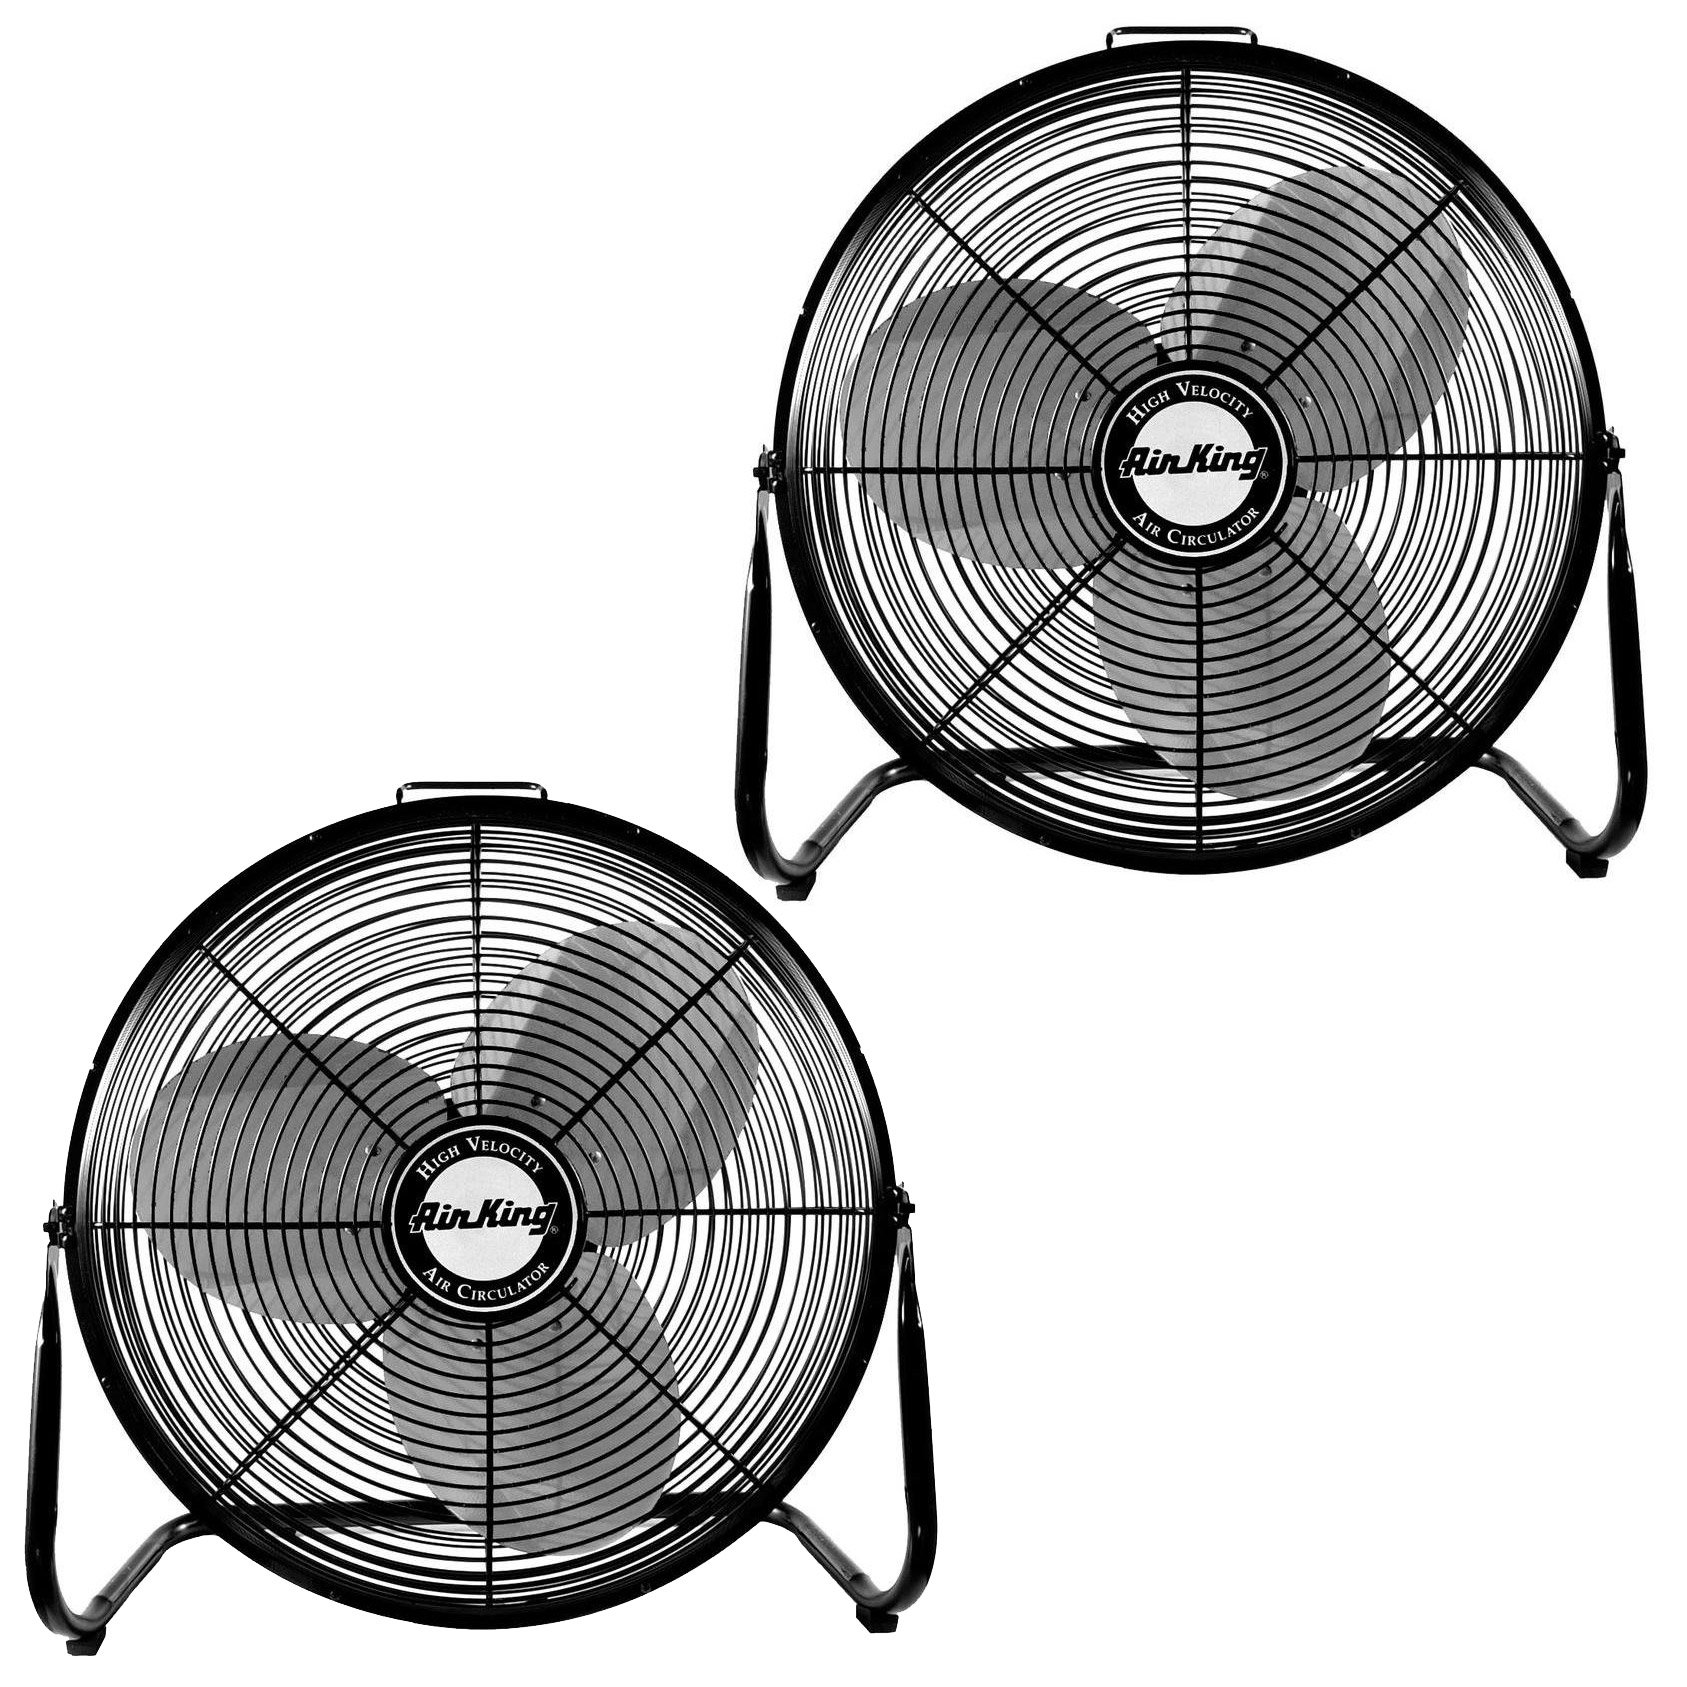 Air King 18″ 1/6 HP 3 Speed Heavy Duty Portable Industrial Floor Fan (2 Pack)